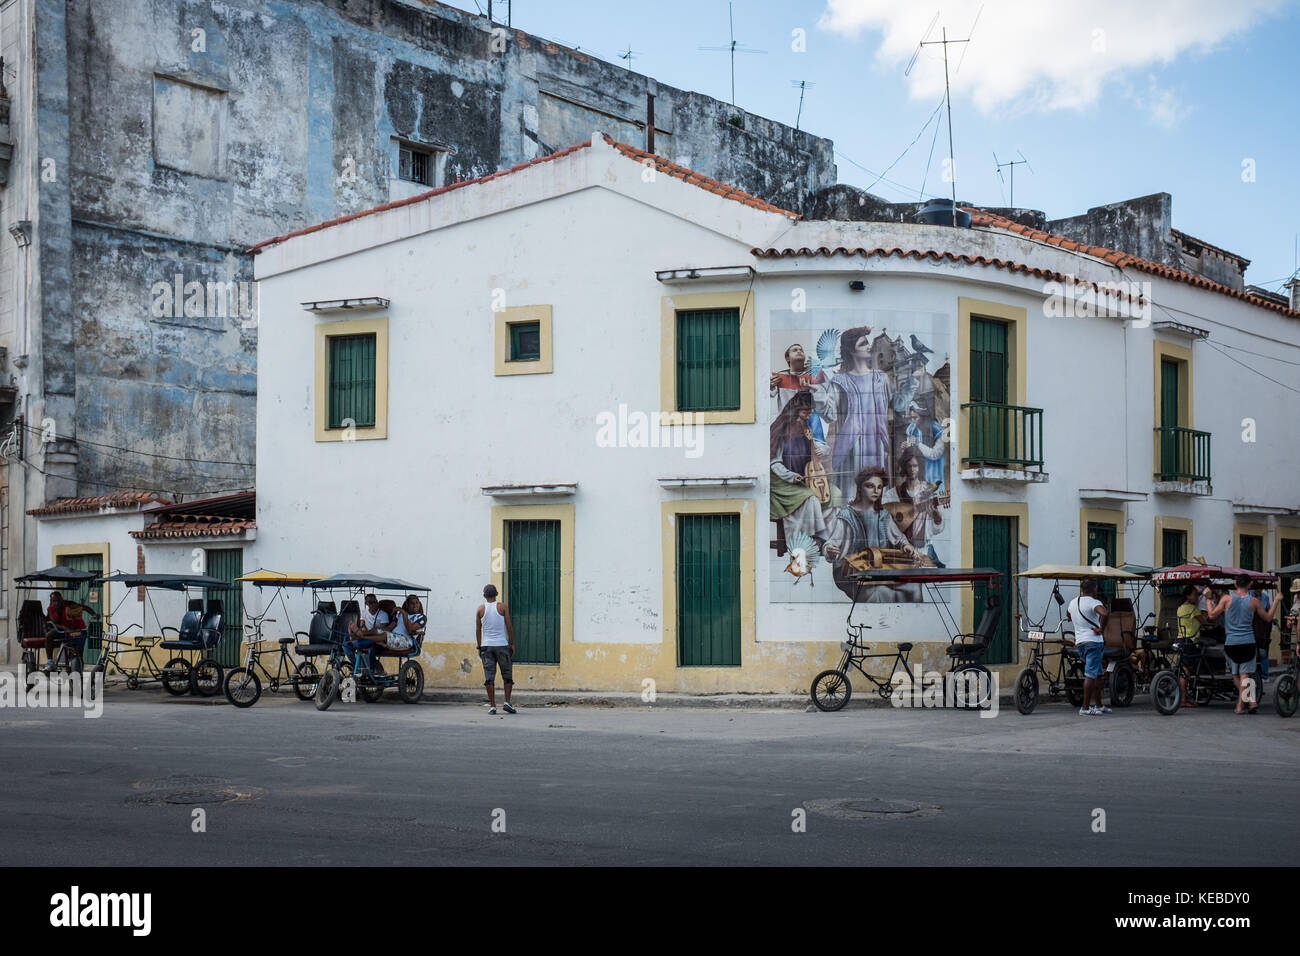 Bicitaxi riders gather next to building with mural painted architecture, Havana, Cuba - Stock Image